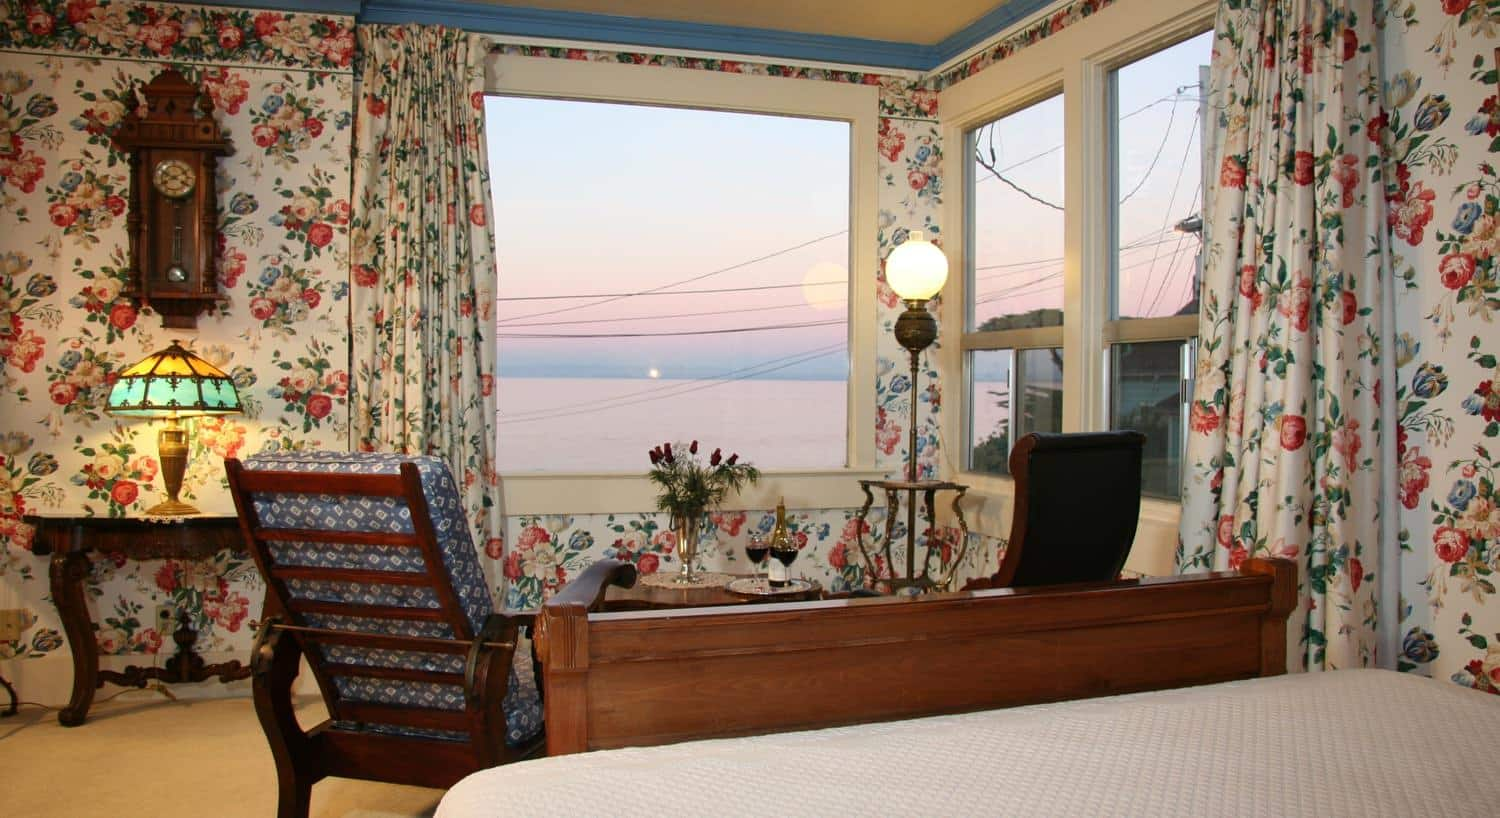 Corner guest room with ocean views, floral walls, sitting chairs and bed with white bedding